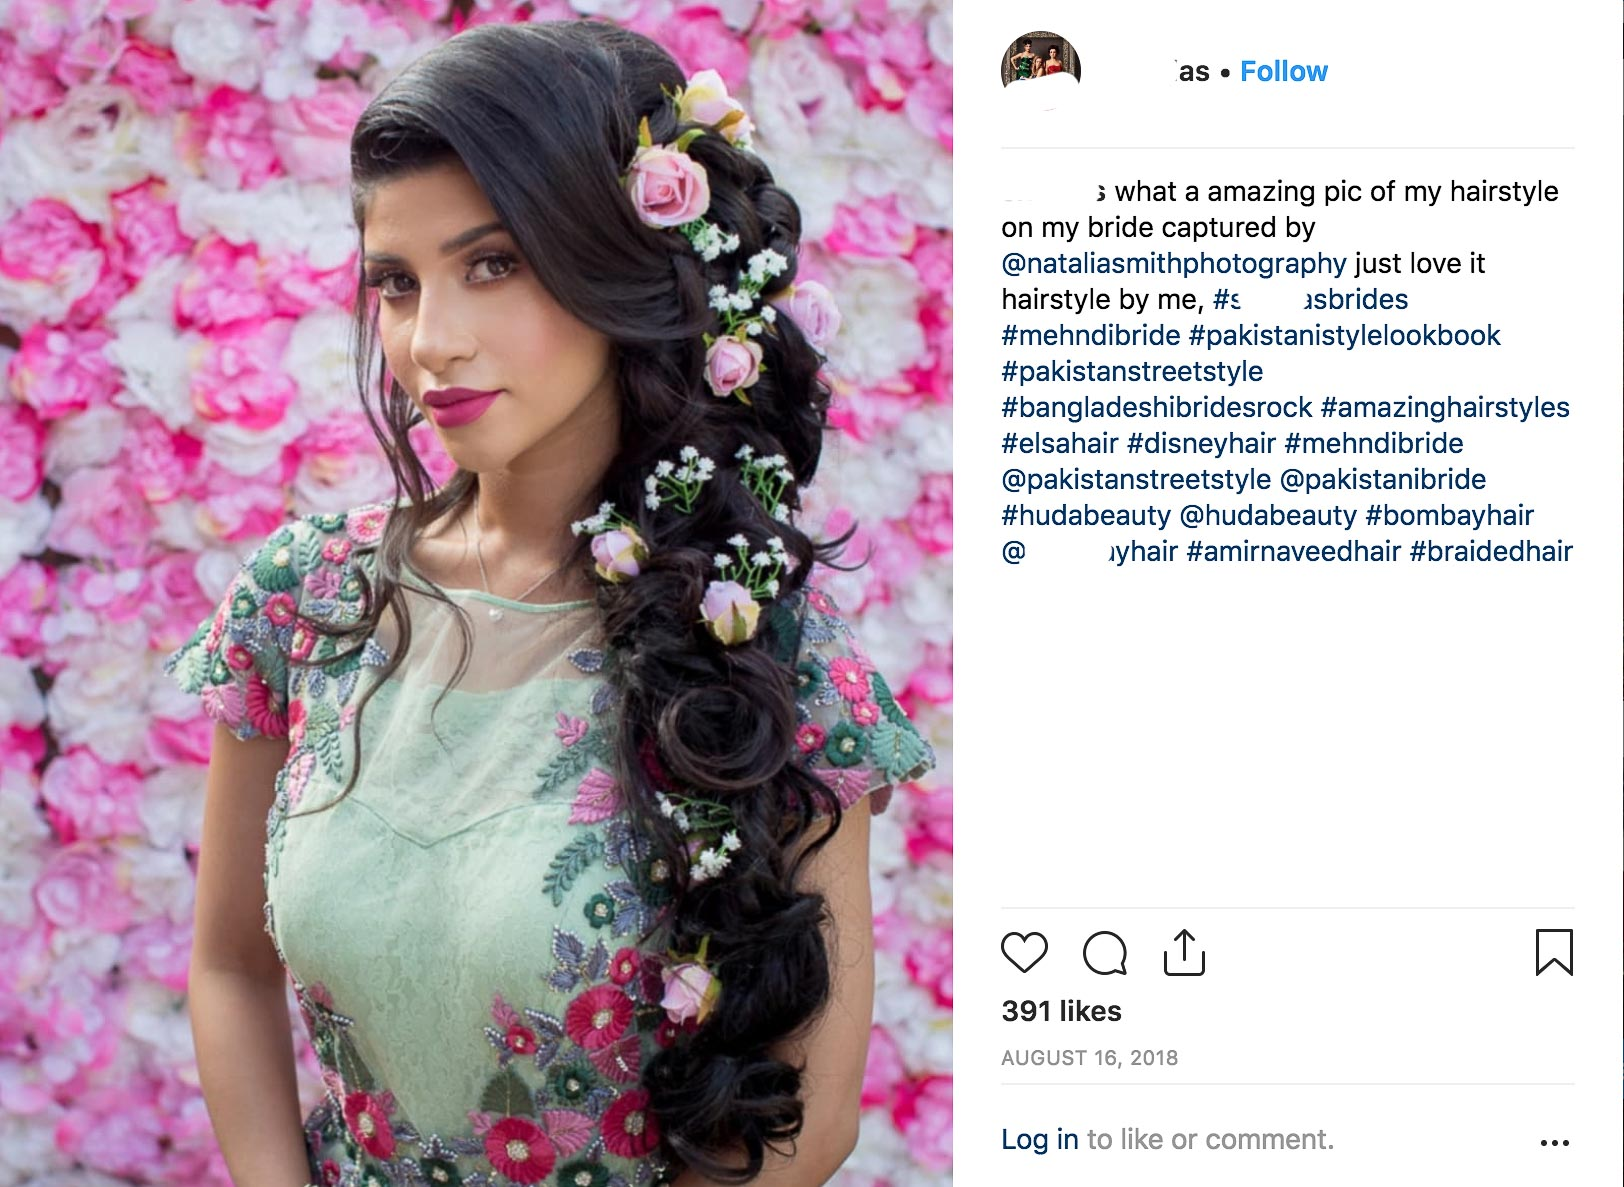 The hair stylist shared the image and tagged the photographer.